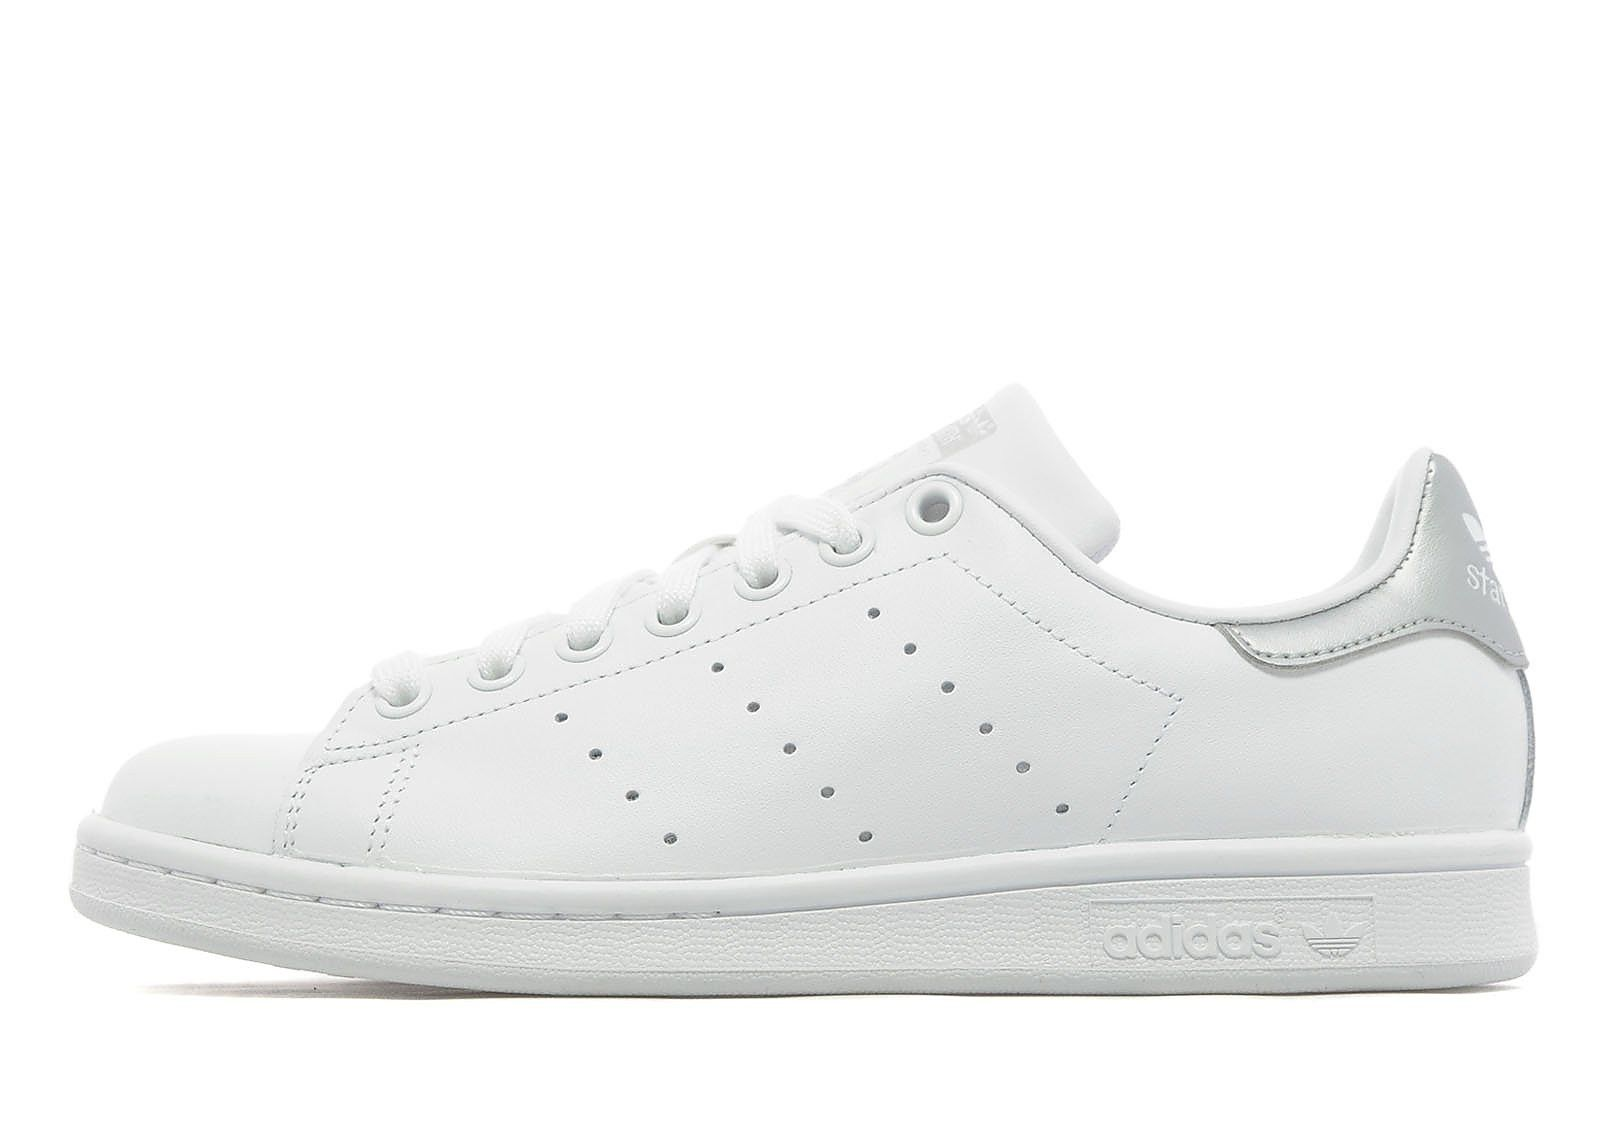 Adidas Stan Smith $75 | sport choice | Pinterest | Adidas stan smith, Adidas  stan and Stan smith